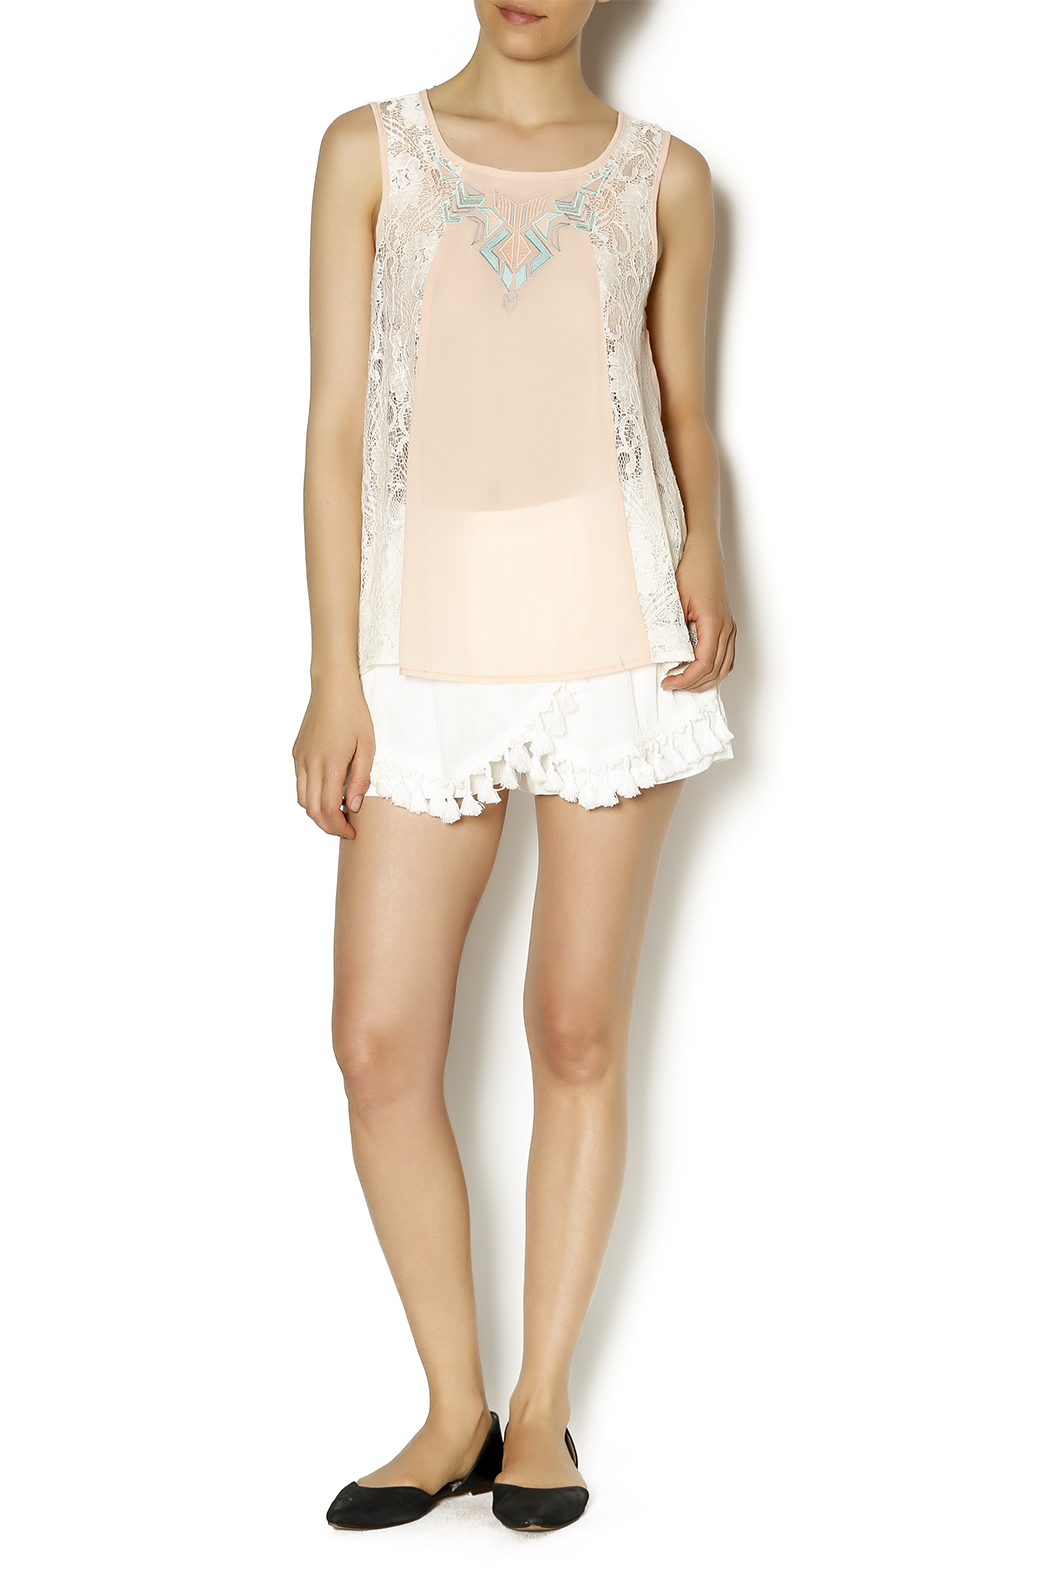 Blu Pepper Peach Embroidered Top - Front Full Image